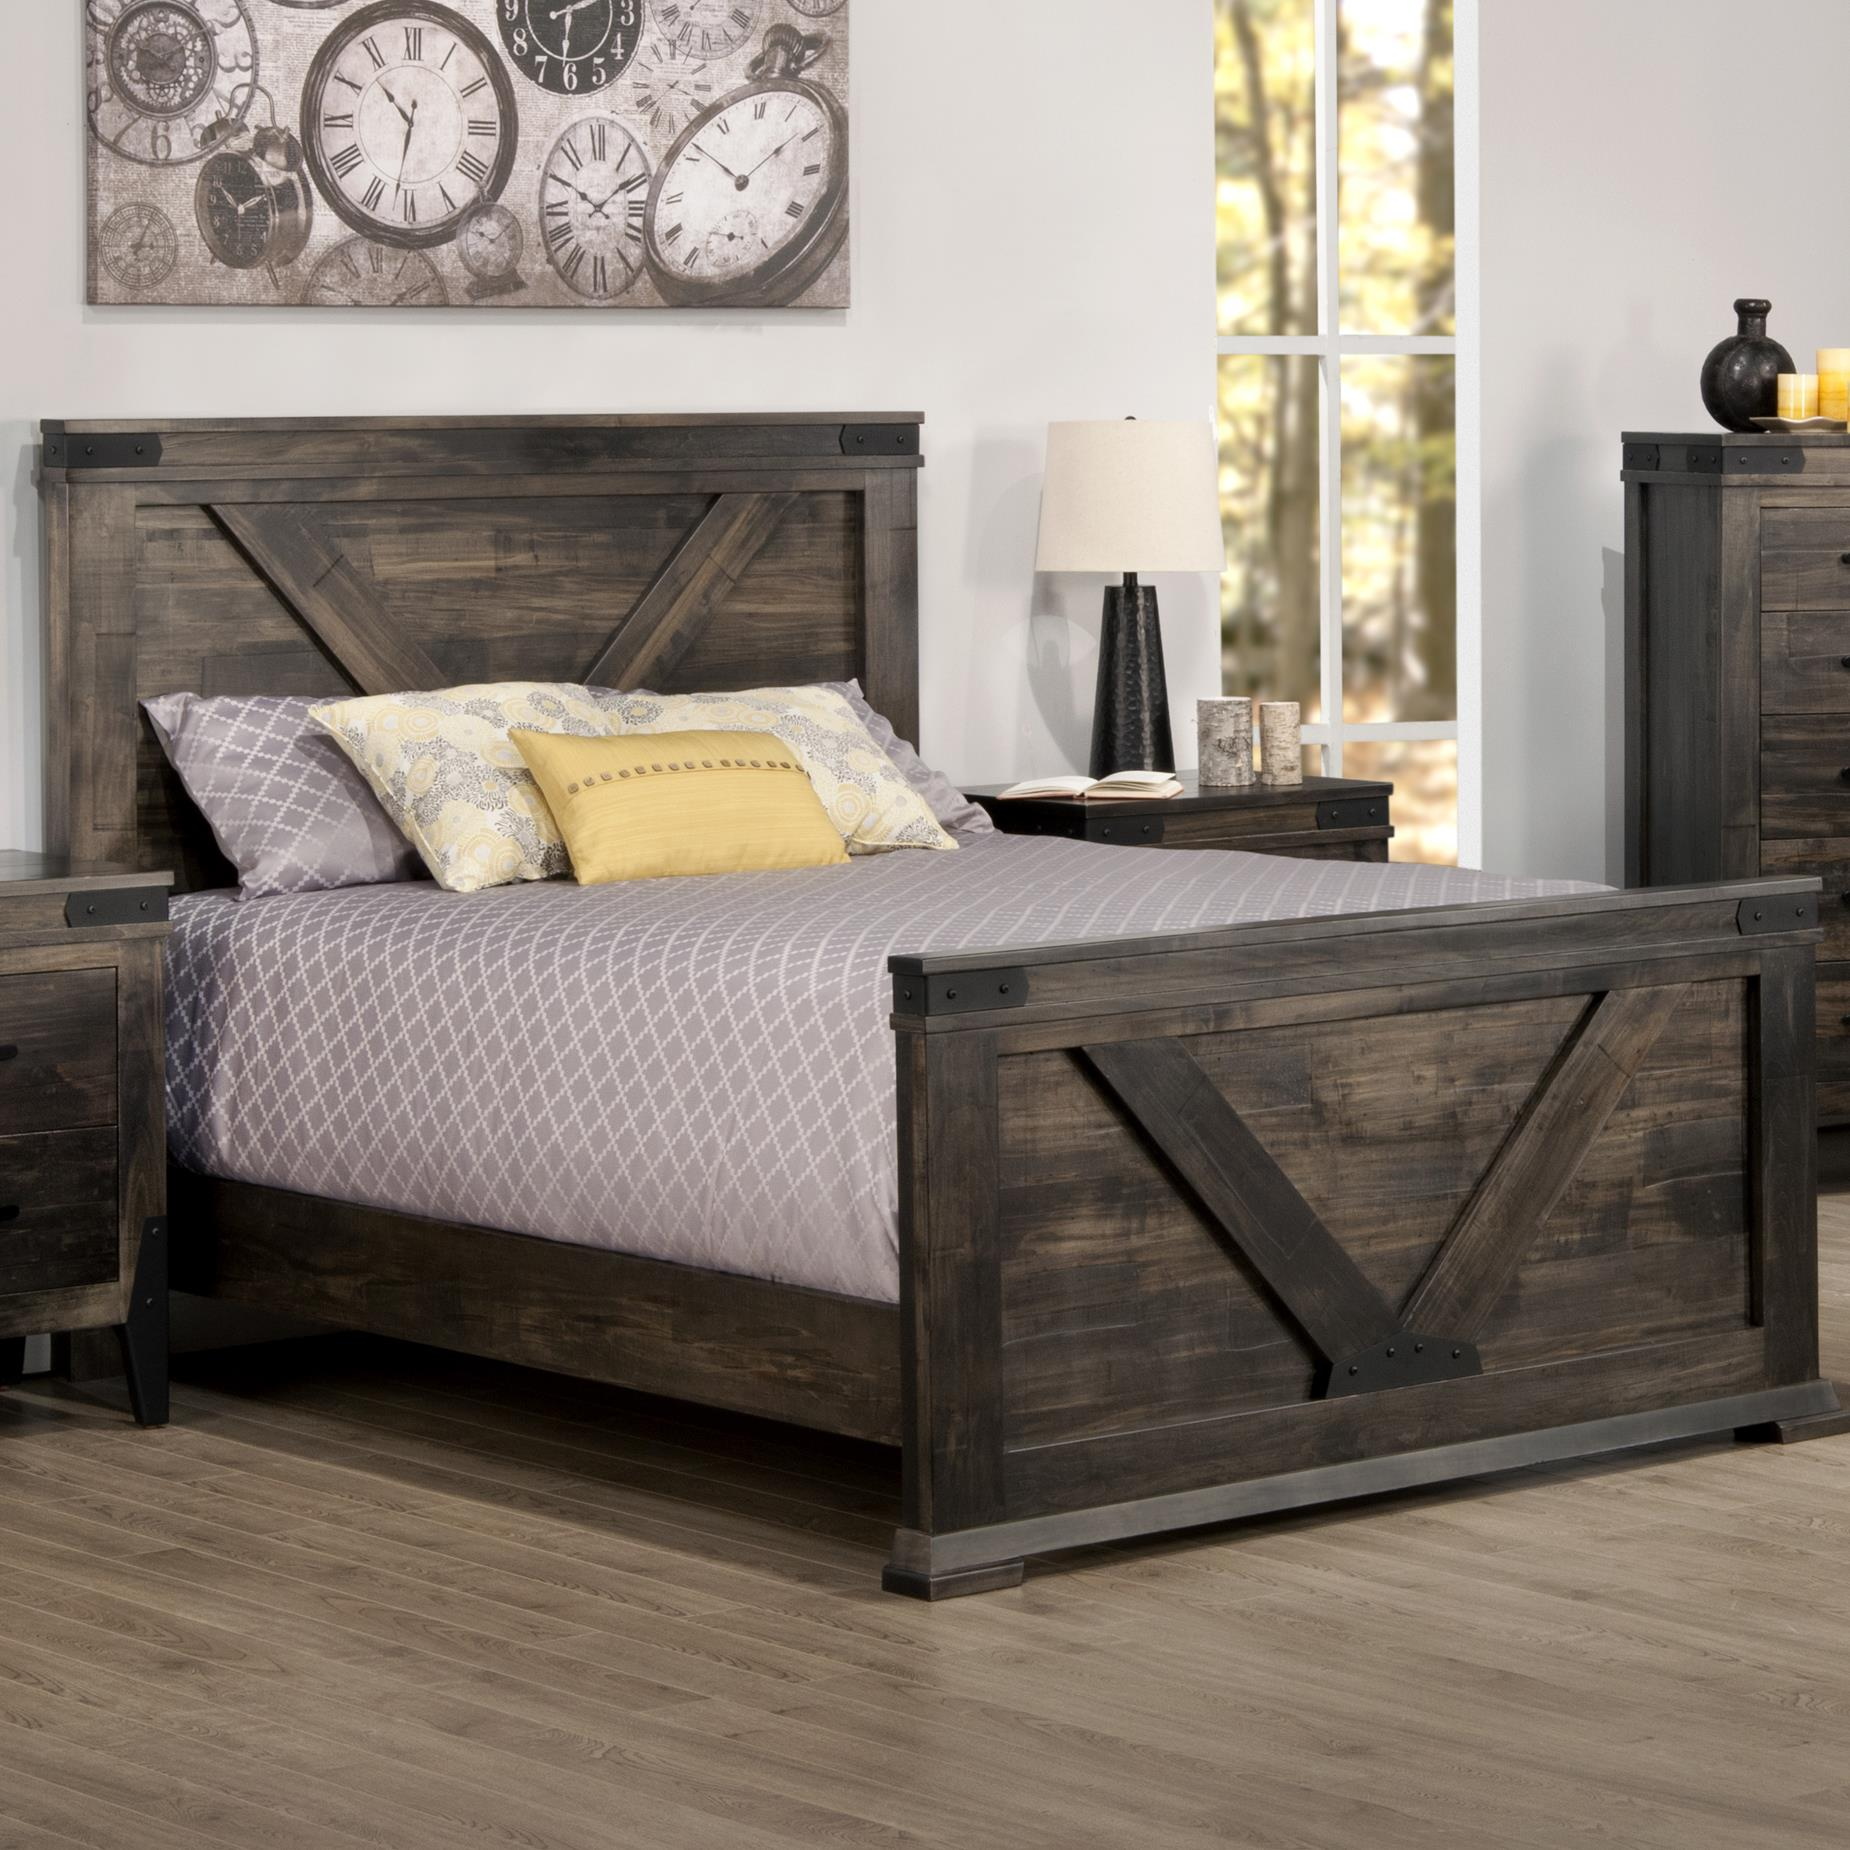 Chattanooga King Bed by Handstone at Jordan's Home Furnishings